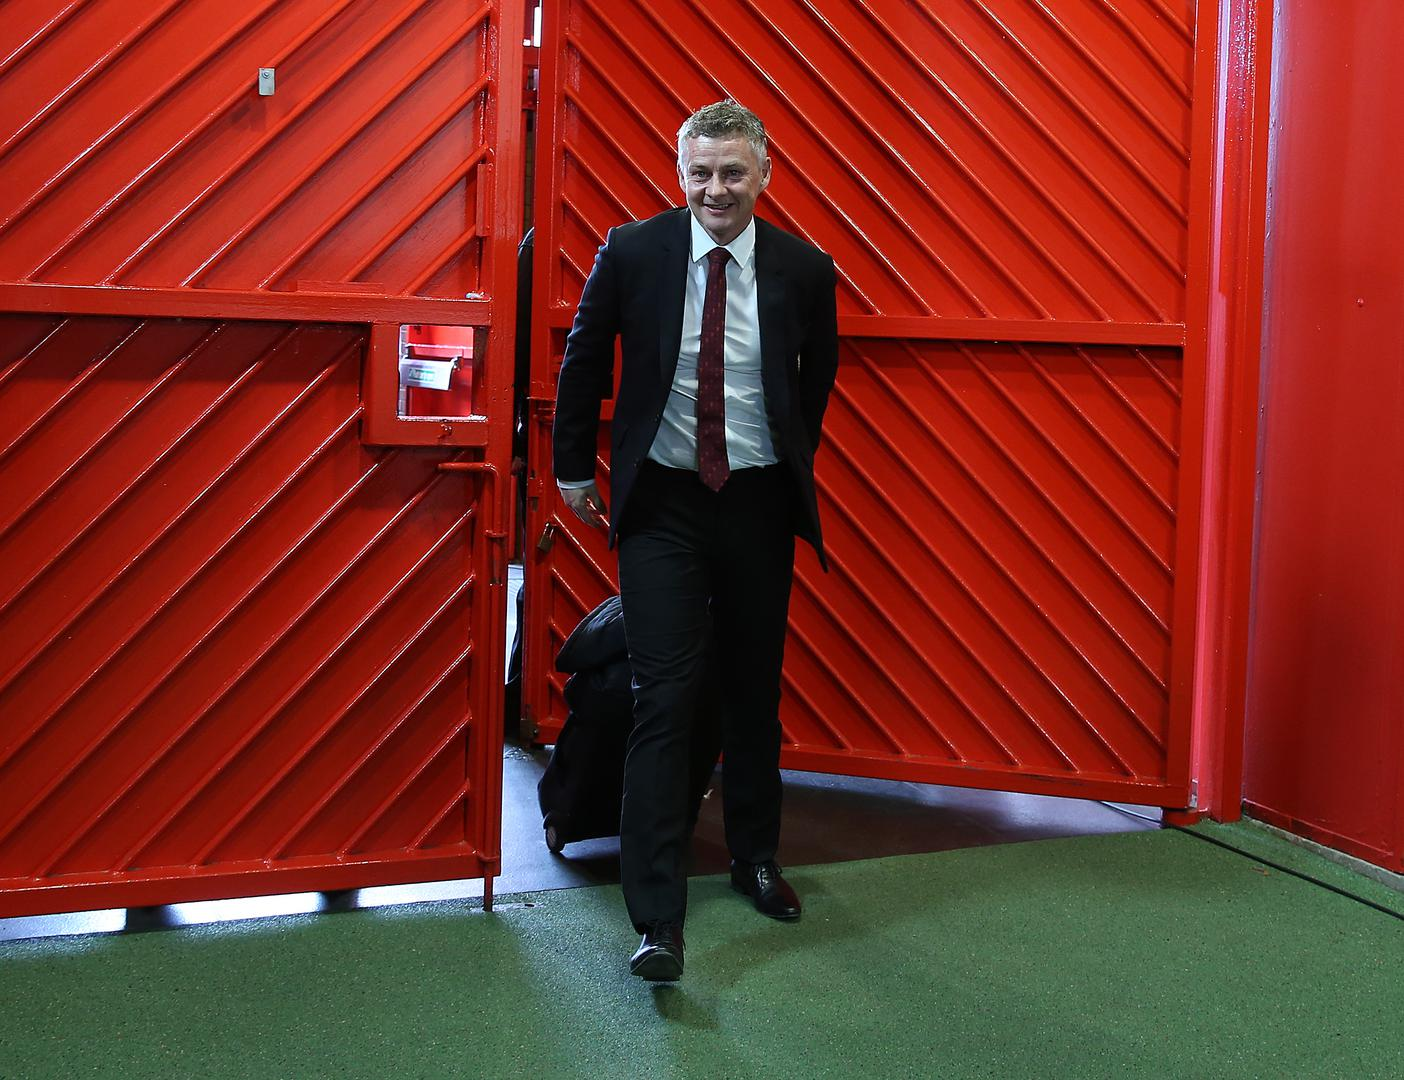 Ole Gunnar Solskjaer arrives at 。。Old Trafford